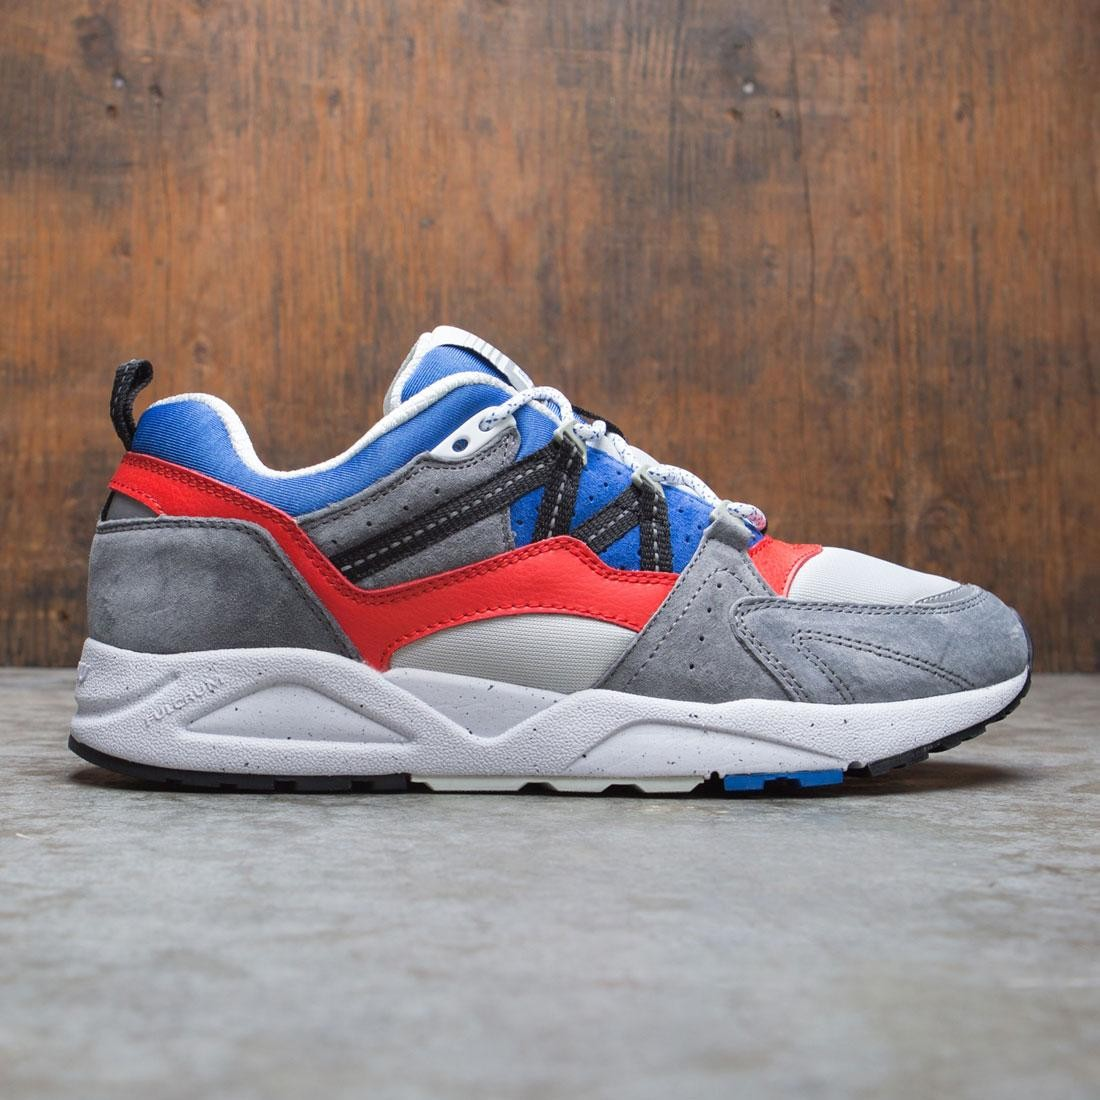 Karhu Men Fusion 2.0 Cross-Country Ski Pack (gray / monument / fiery red)